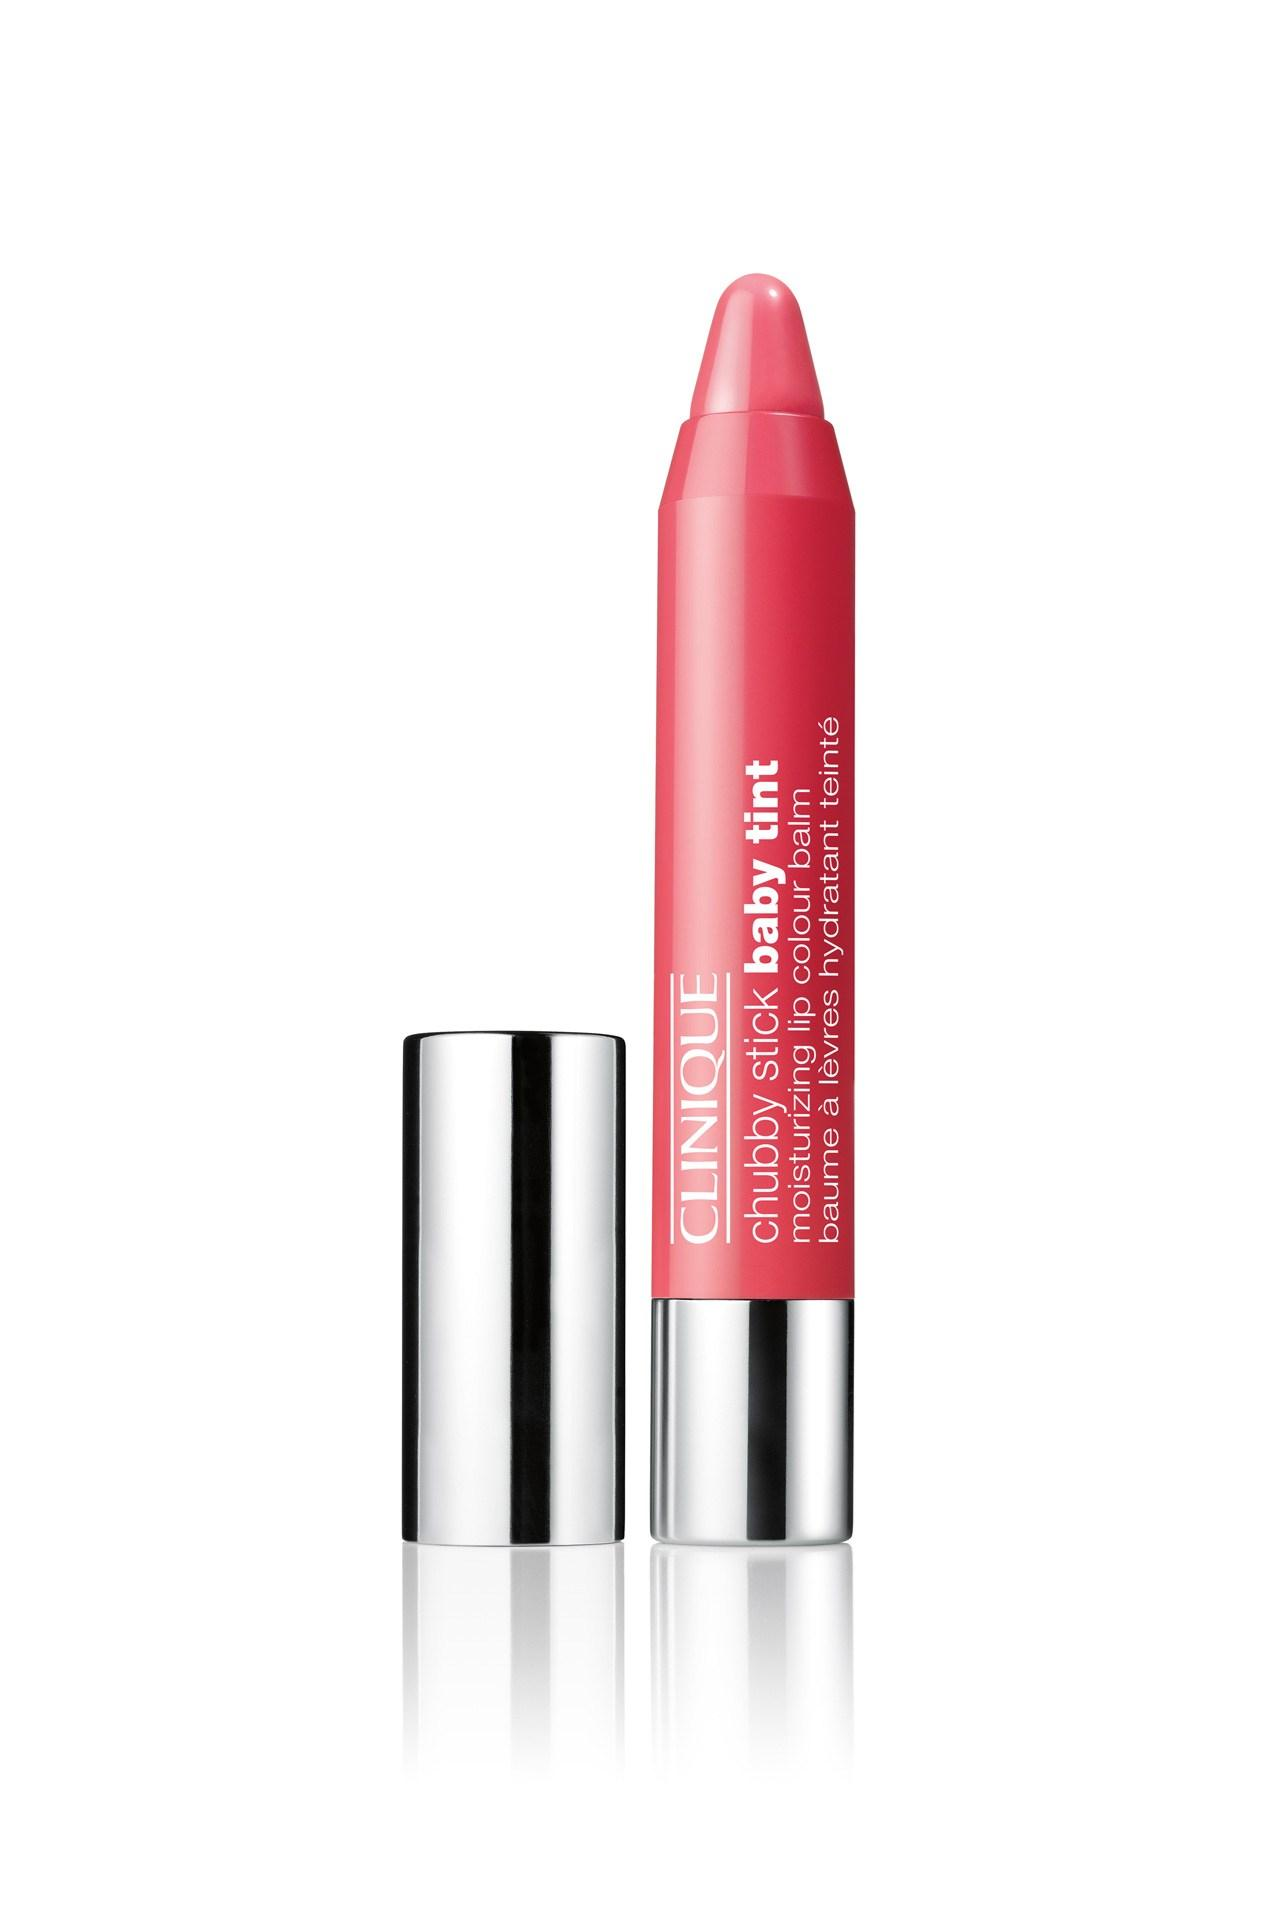 The 10 best tinted lip balms: http://t.co/Qsbvdpw4lm http://t.co/hdOz6DvHjA